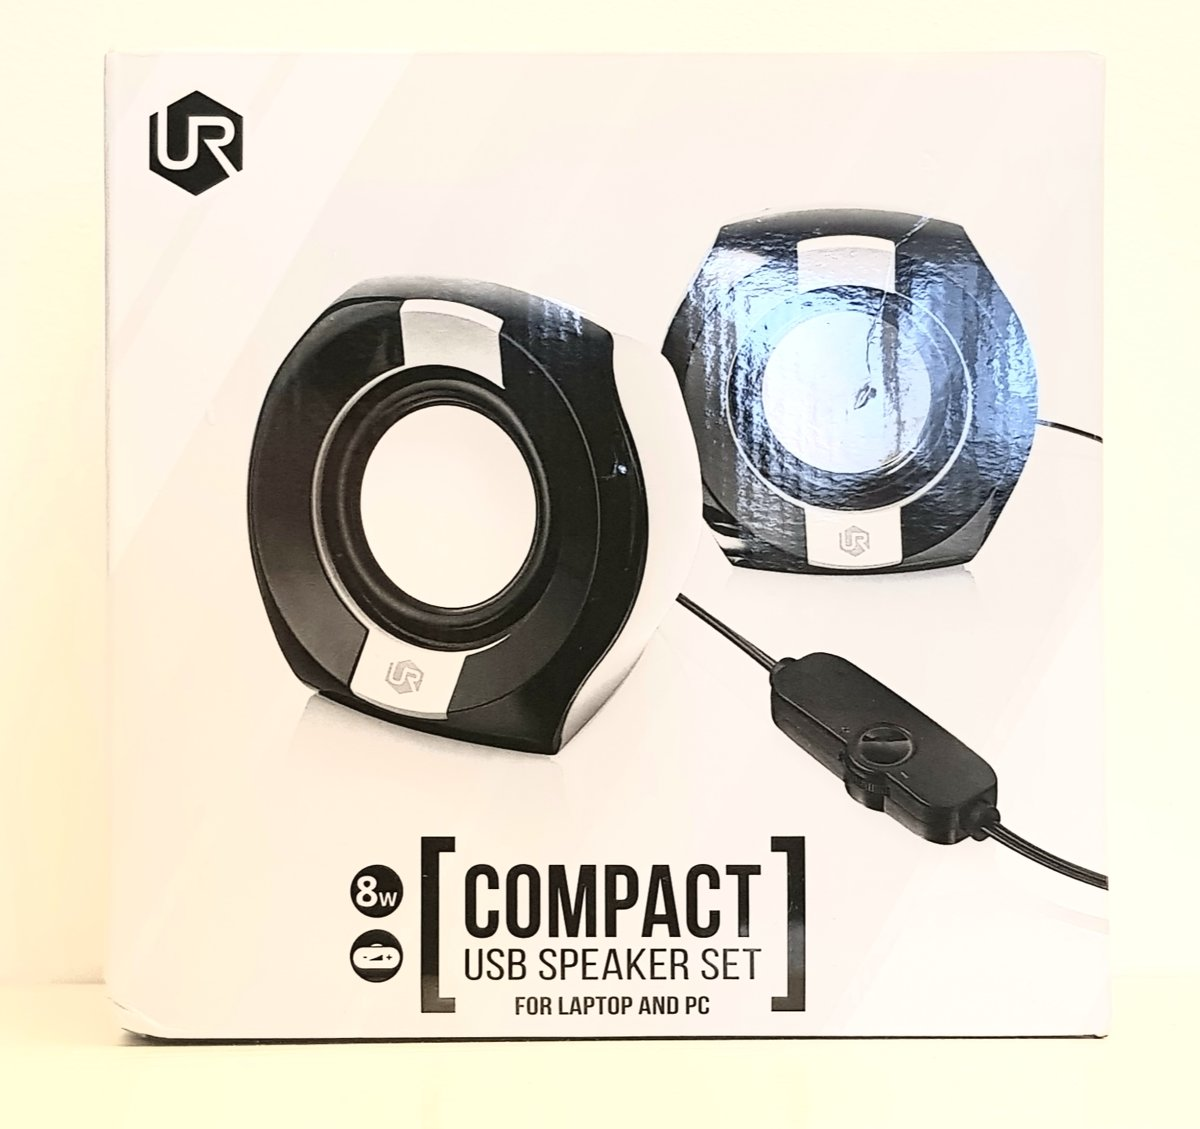 Urban Compact 2.0 Speakerset for Laptop and PC Black/White